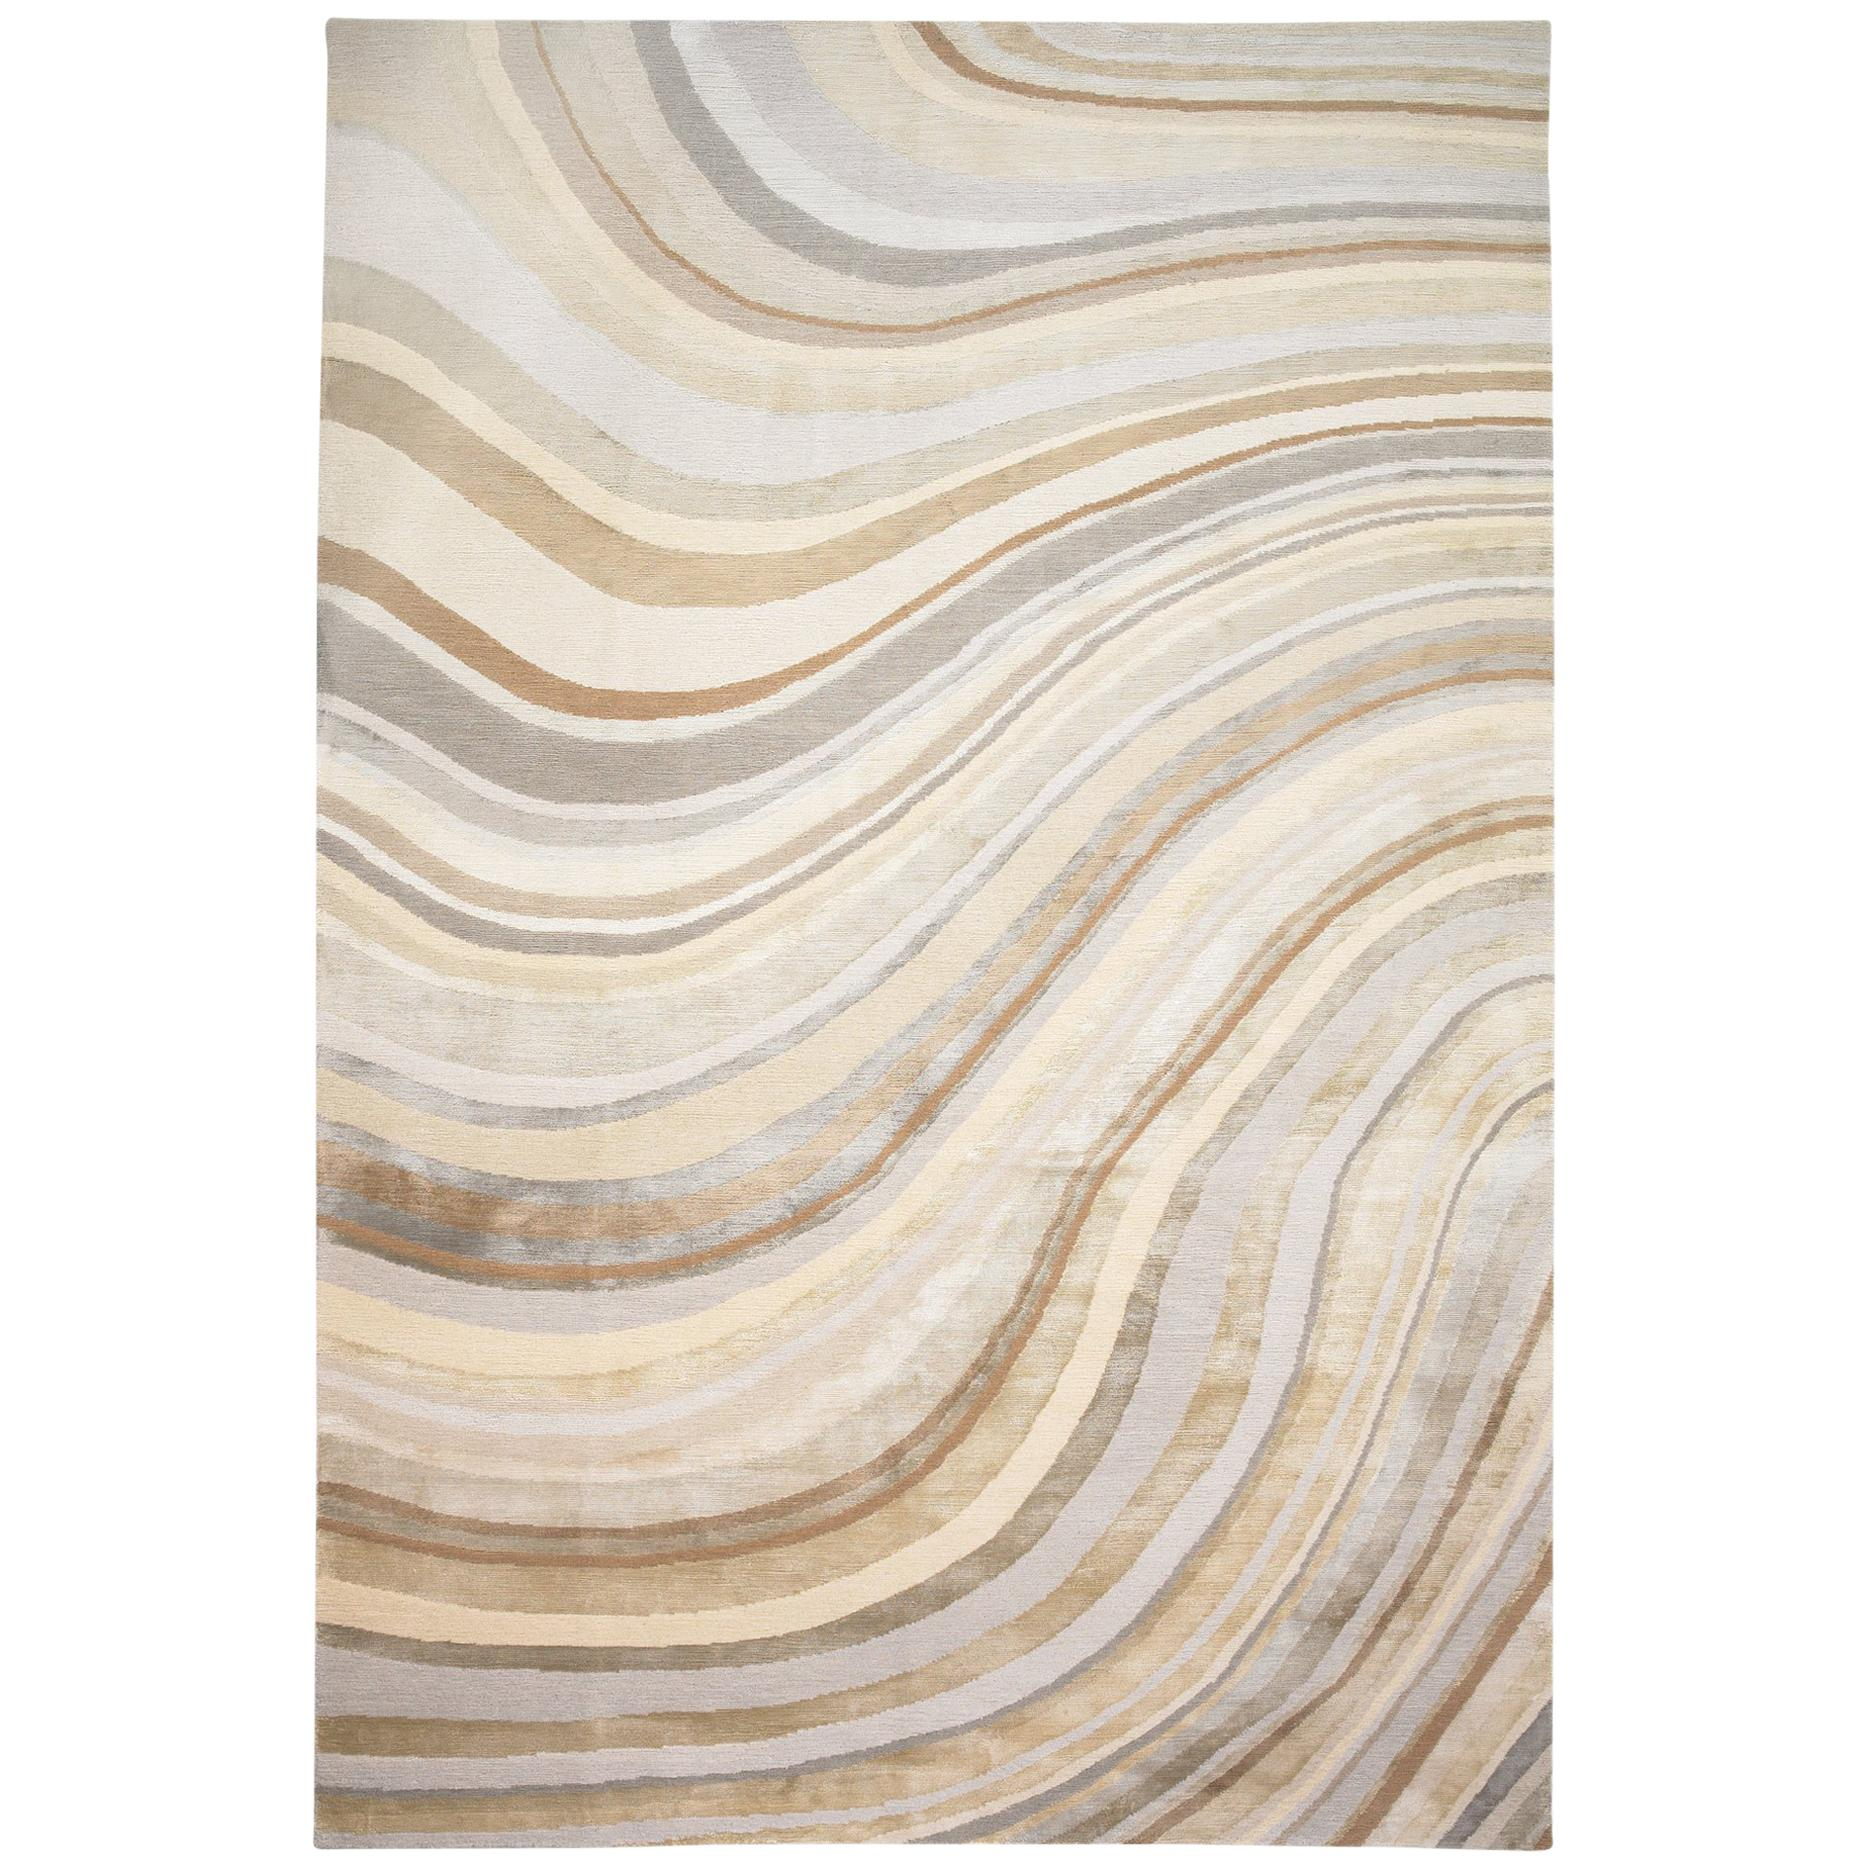 Pale Swirl Hand-Knotted 10x8 Rug in Wool and Silk by Paul Smith